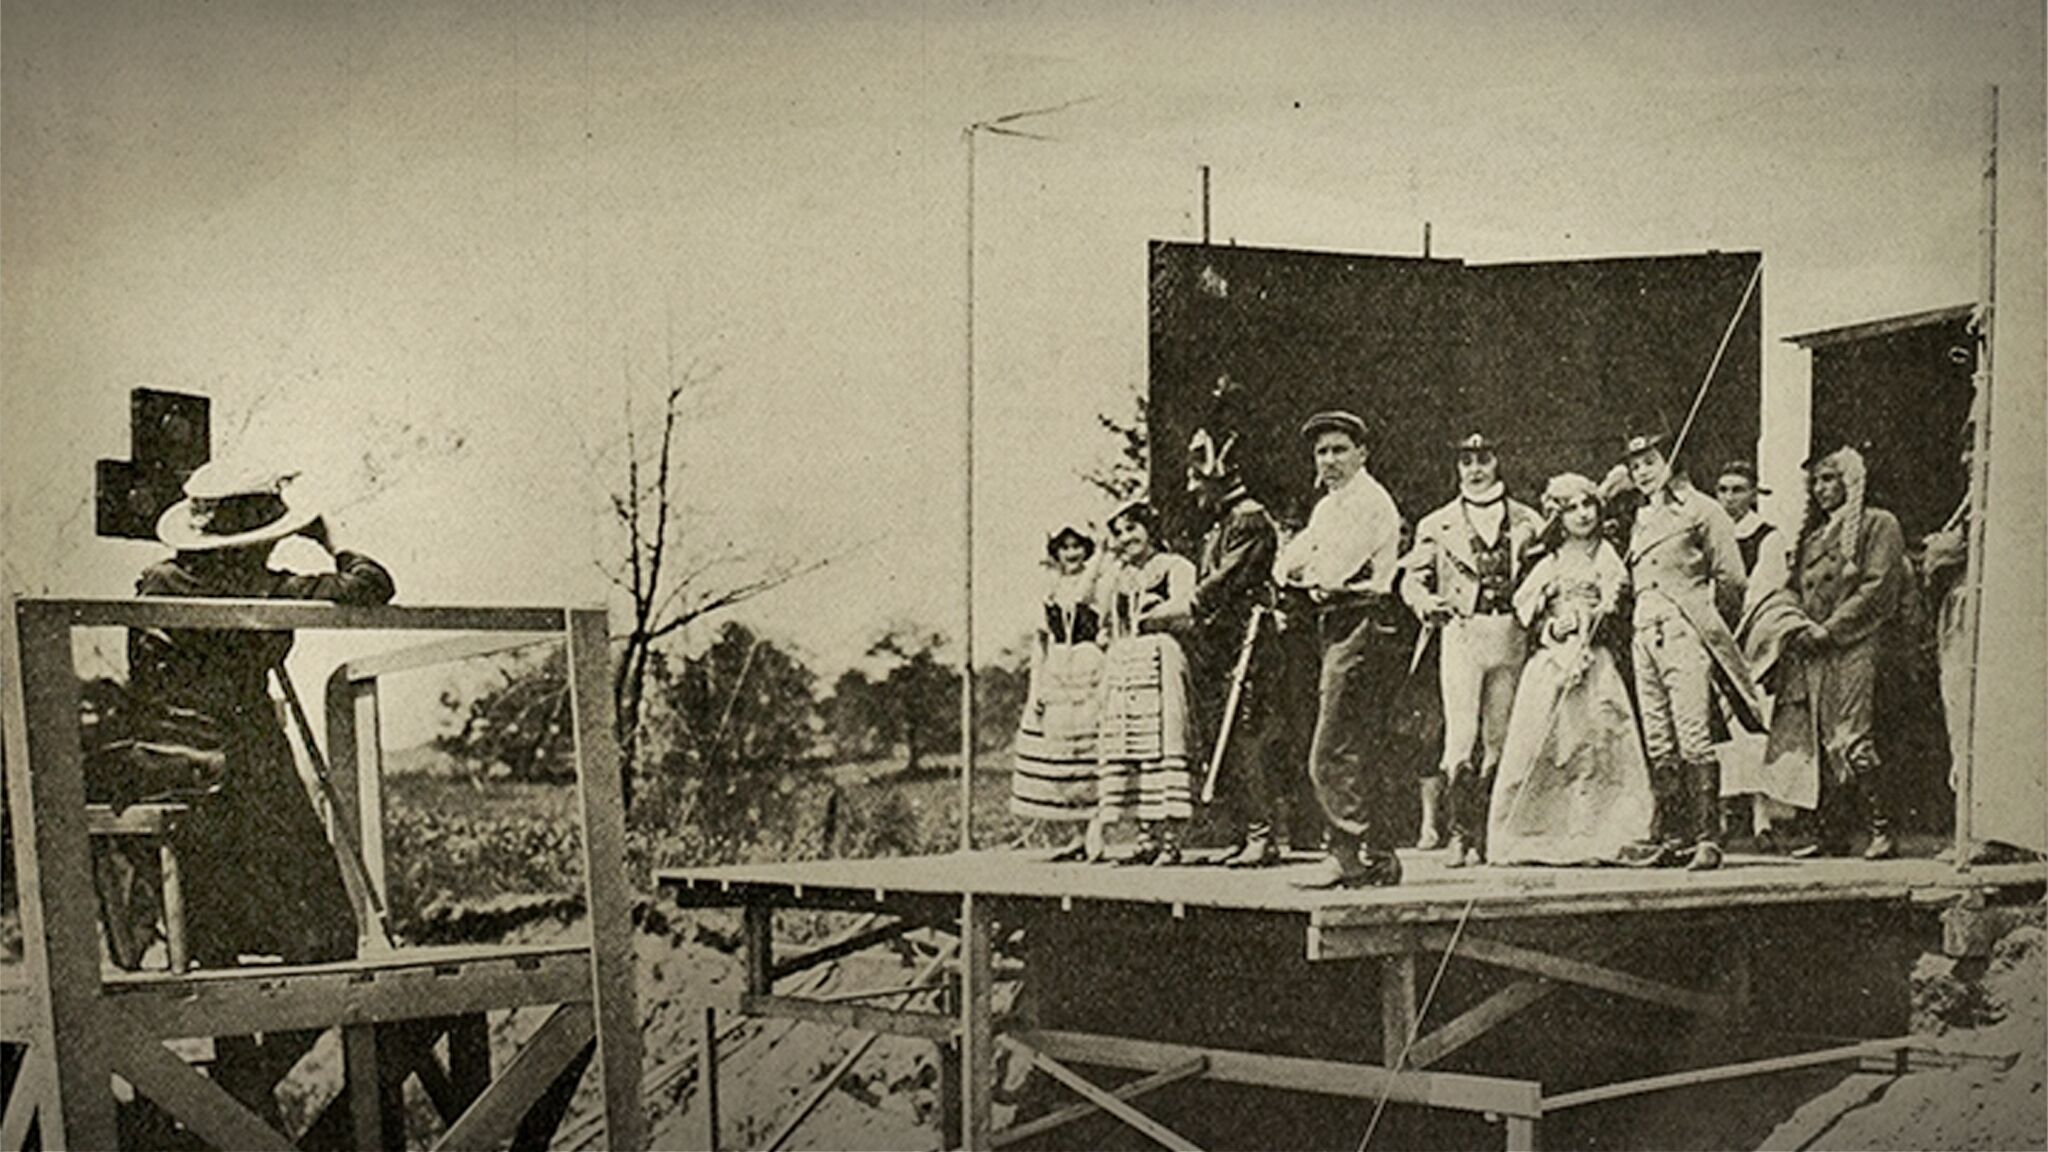 BE NATURAL: THE UNTOLD STORY OF ALICE GUY-BLACHÉ - For the love of cinema.